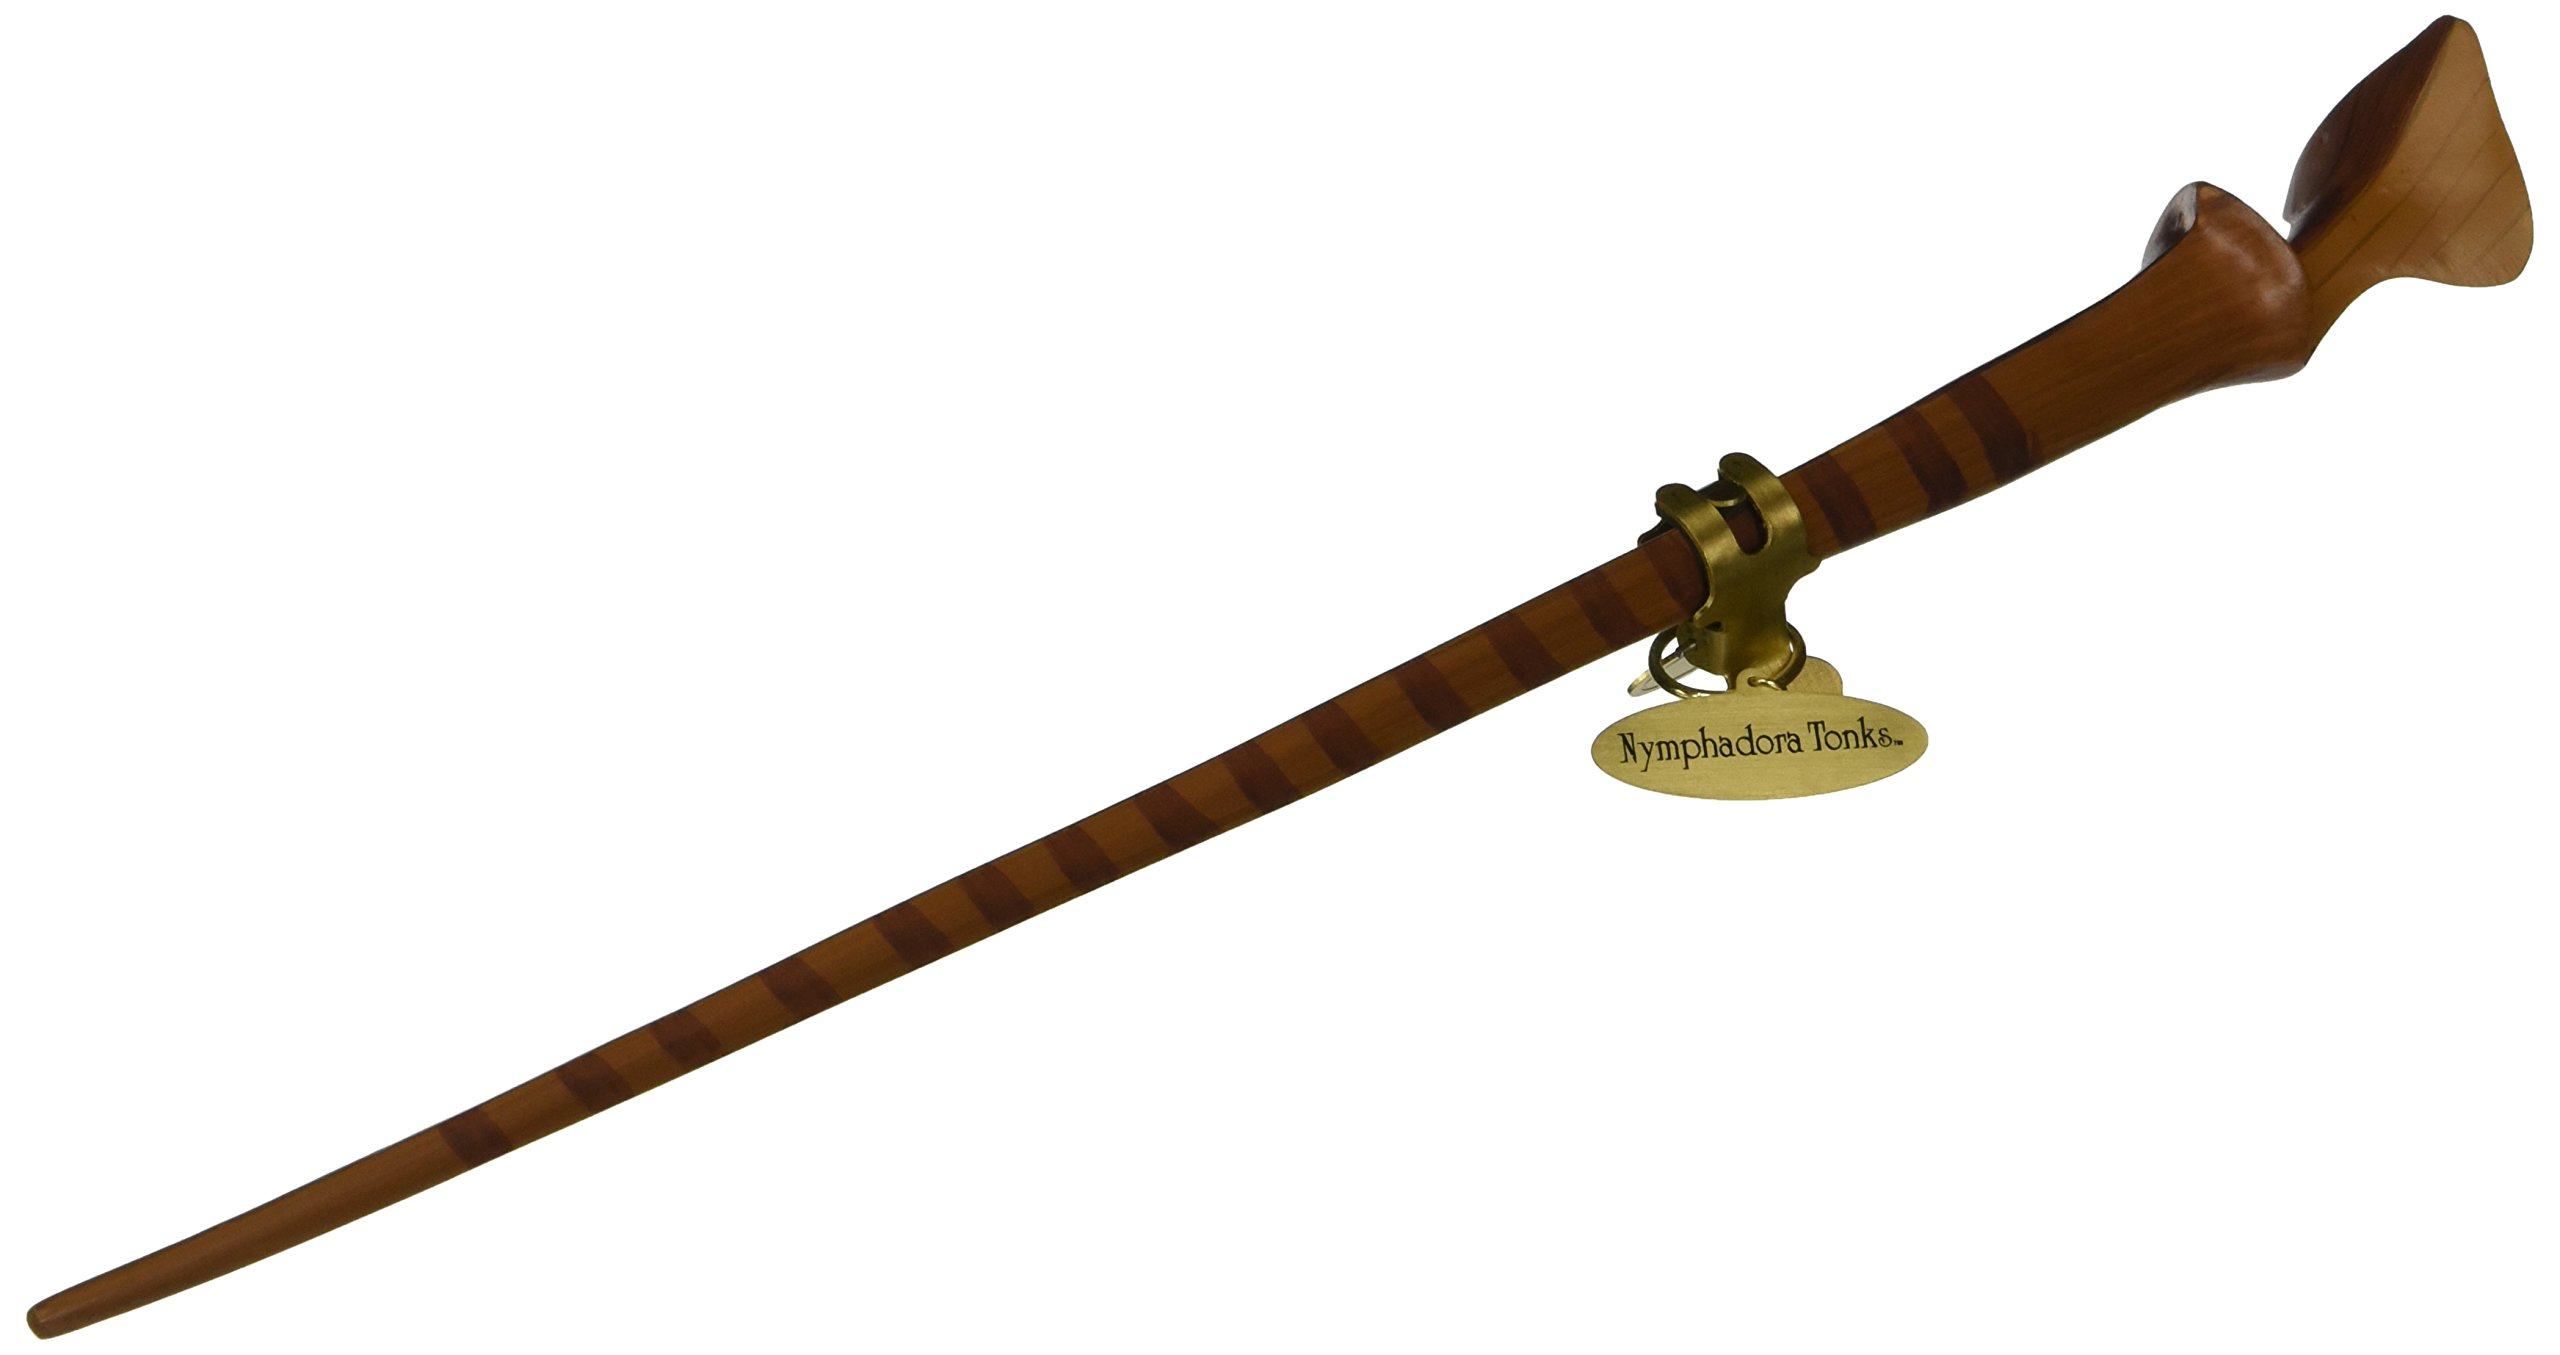 Noble Collection - Harry Potter Wand Nymphadora Tonks (Character-Edition) by The Noble Collection (Image #1)